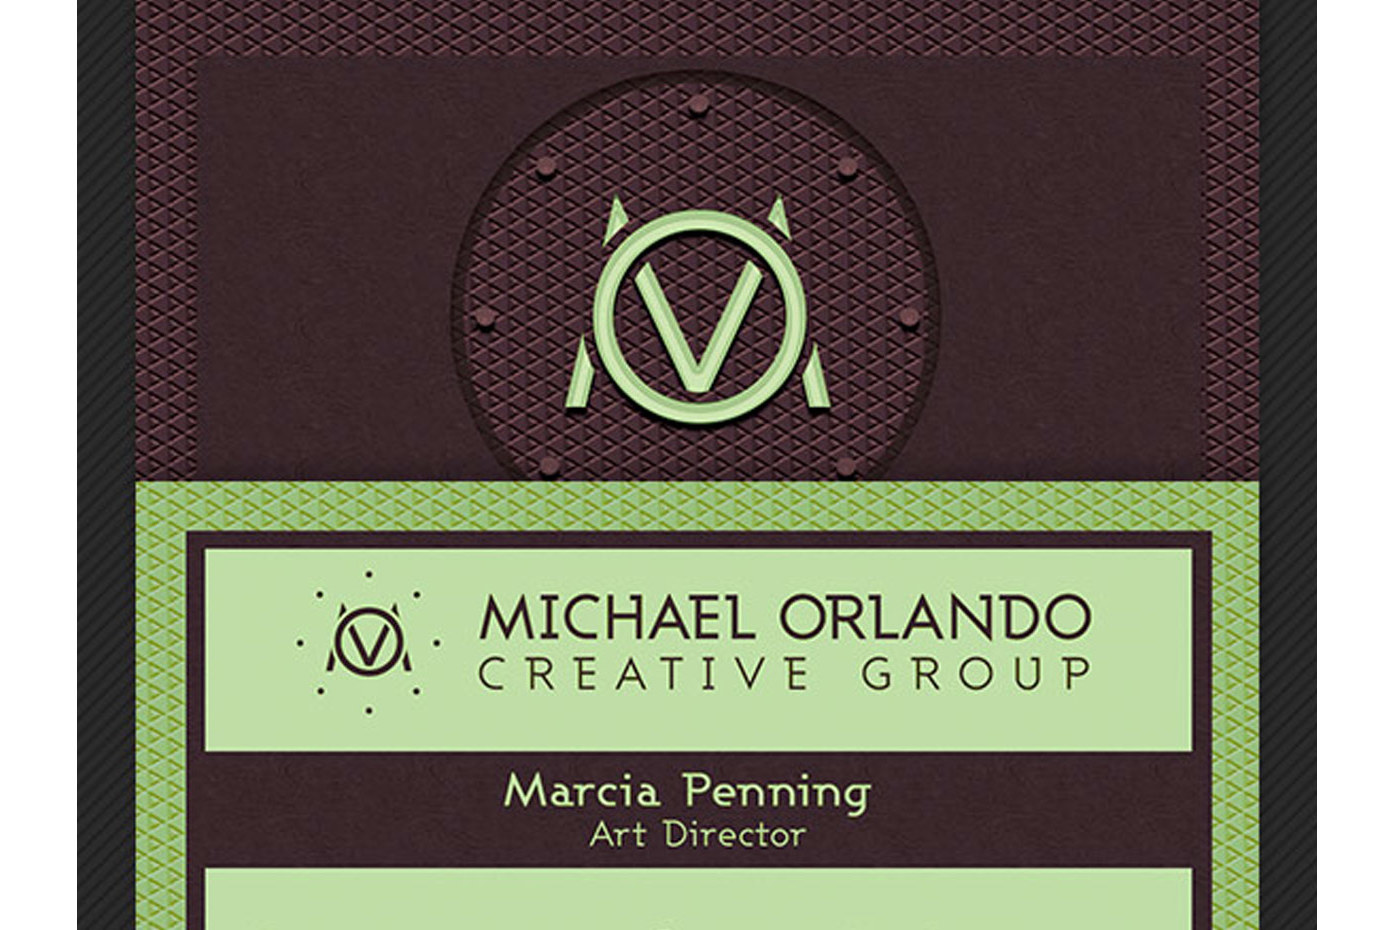 Creative Group Business Card Template example image 5